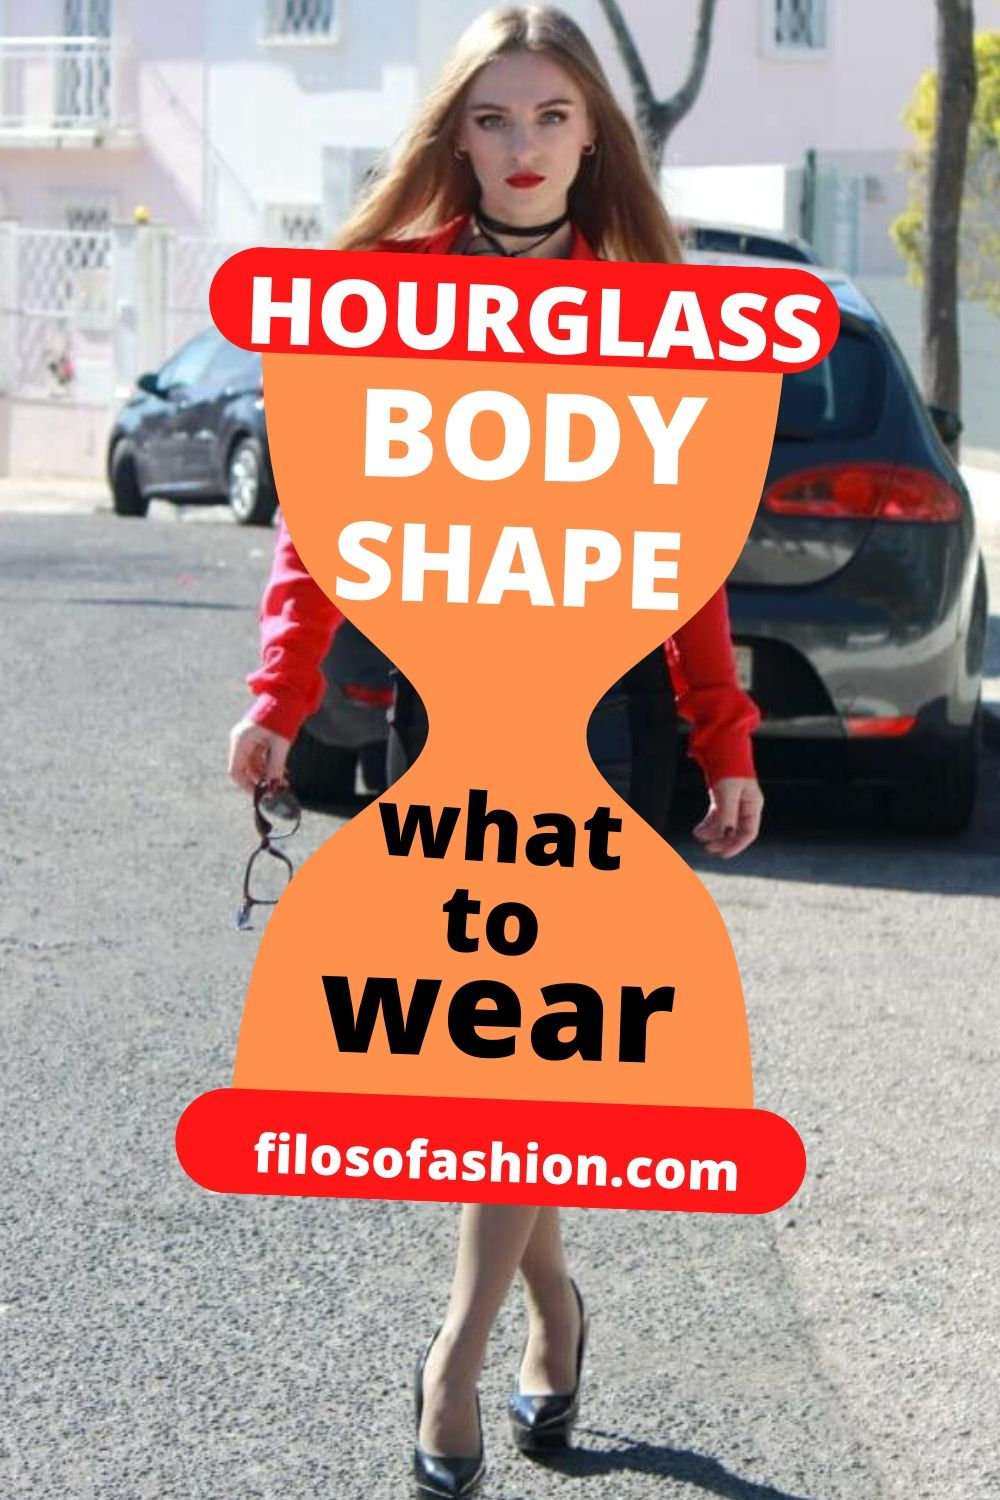 How to dress for an hourglass body shape